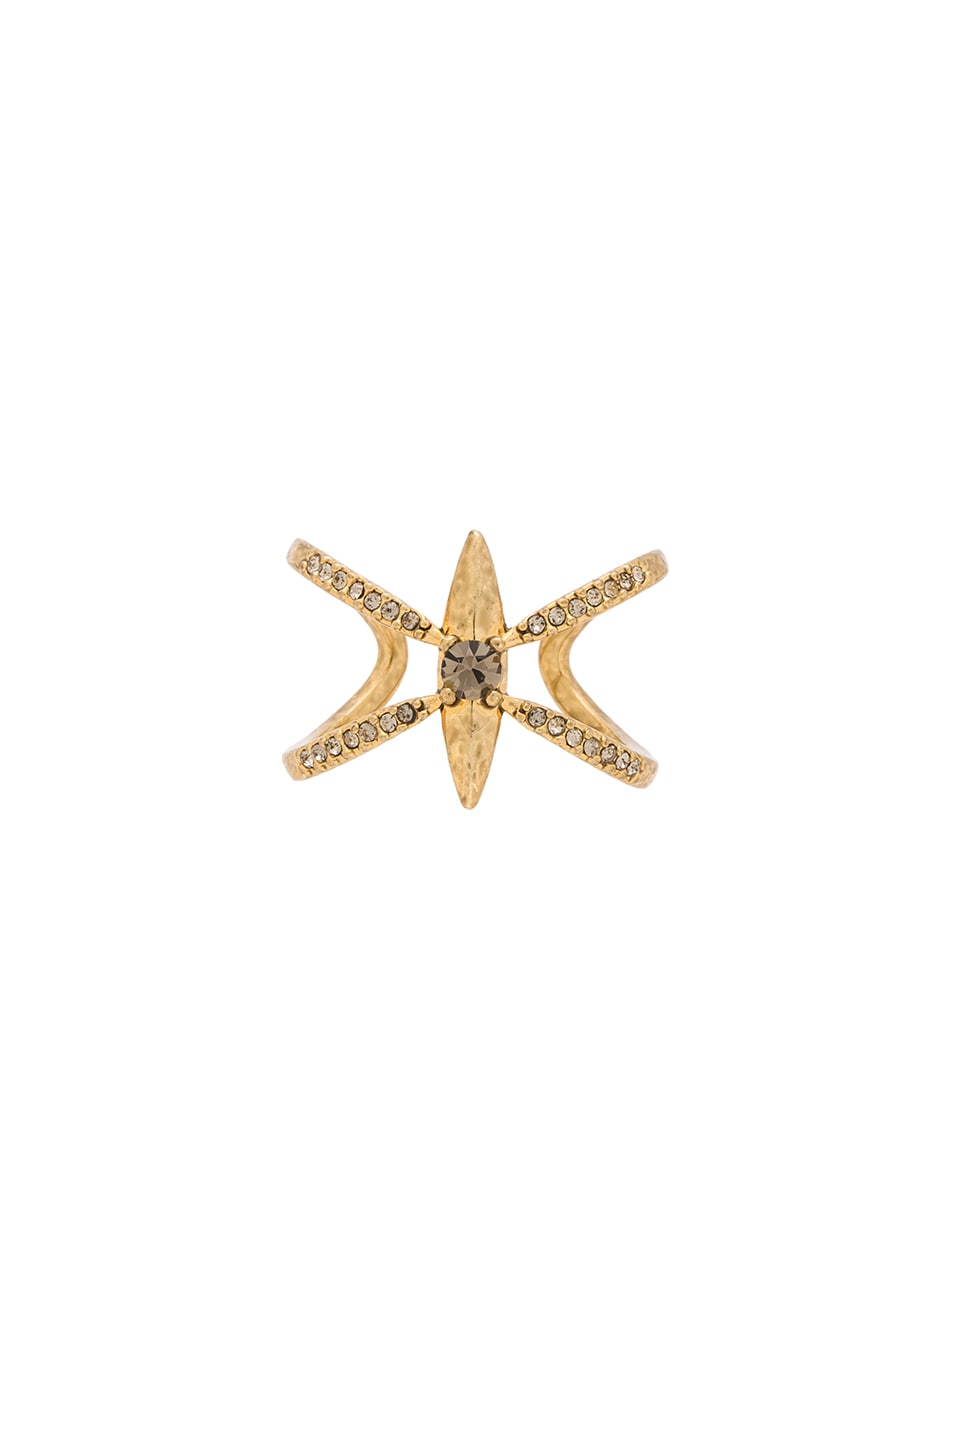 Luv AJ The Petal Pointe Cross Ring in Antique Gold